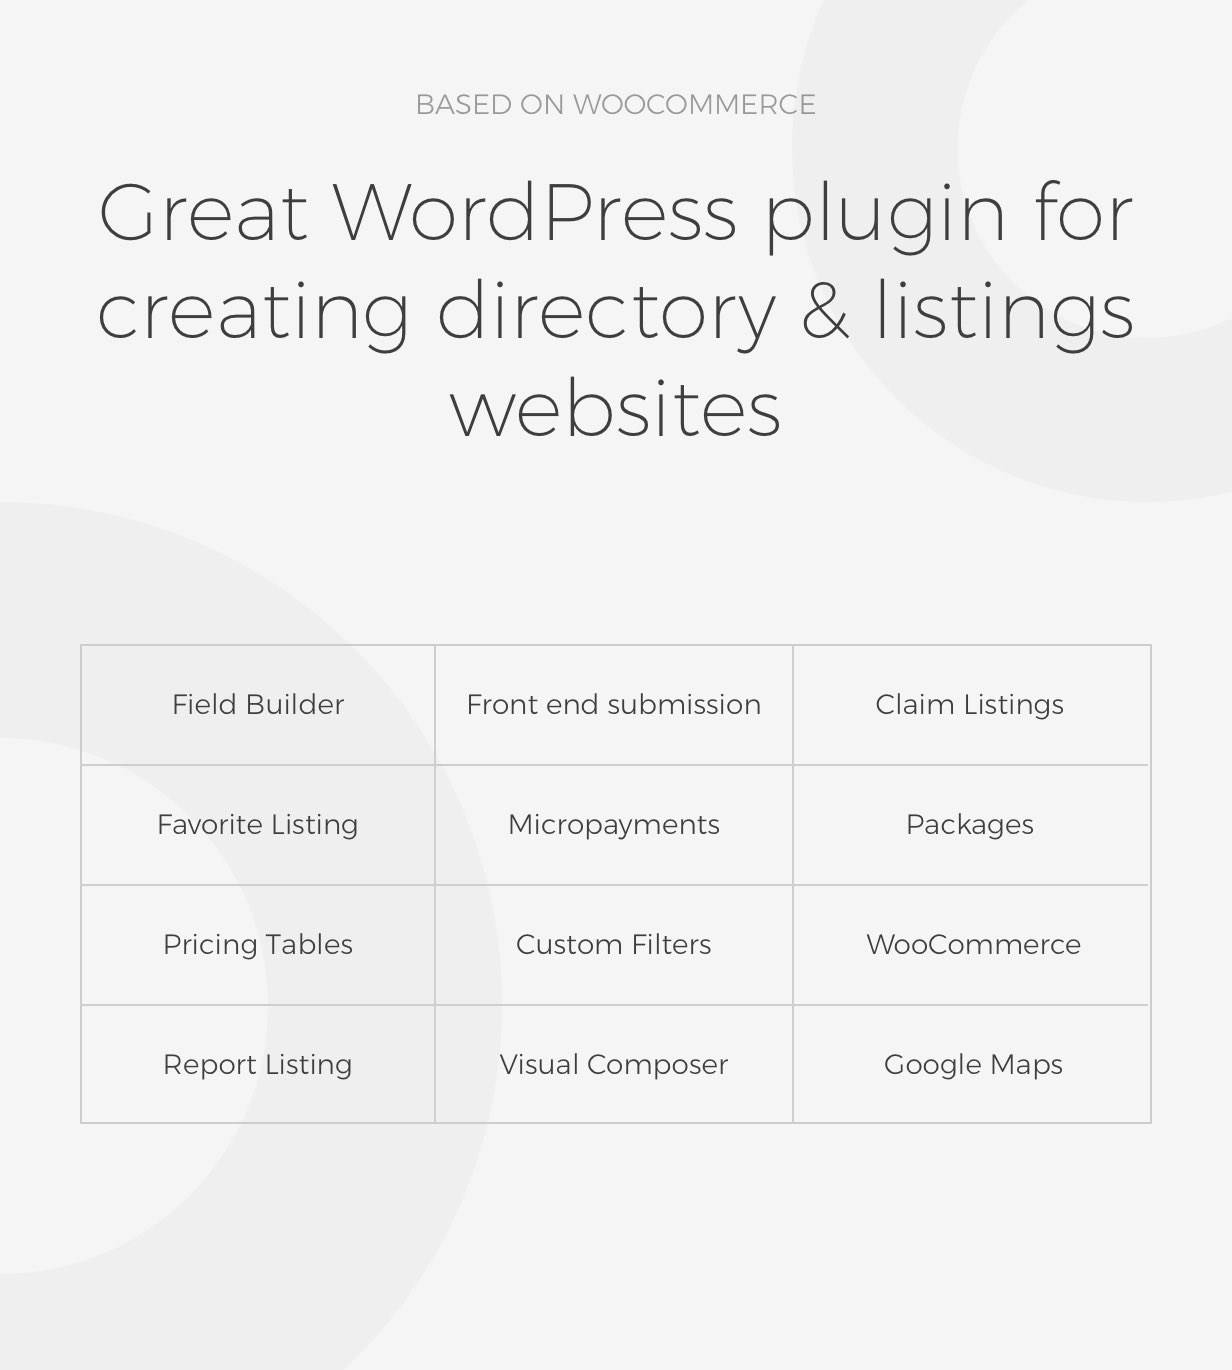 Listing Manager WordPress Directory Plugin Free Download #1 free download Listing Manager WordPress Directory Plugin Free Download #1 nulled Listing Manager WordPress Directory Plugin Free Download #1